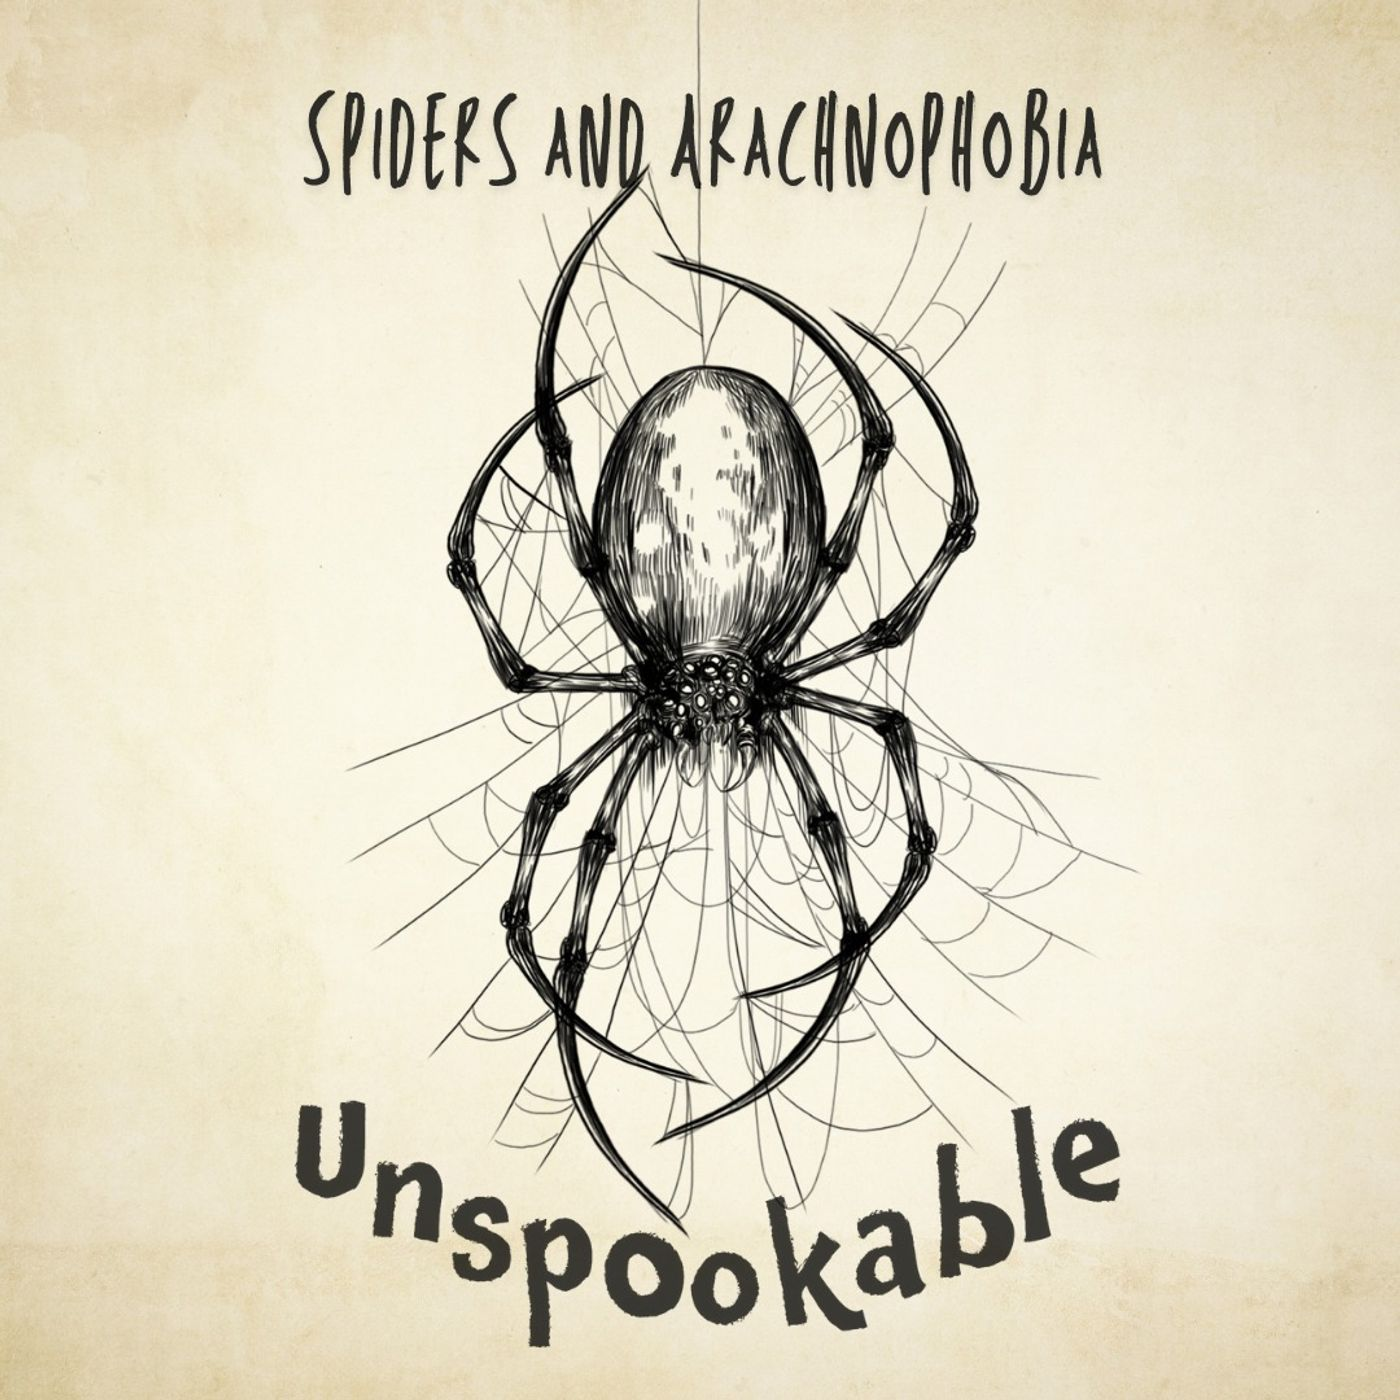 Episode 26: Spiders and Arachnophobia